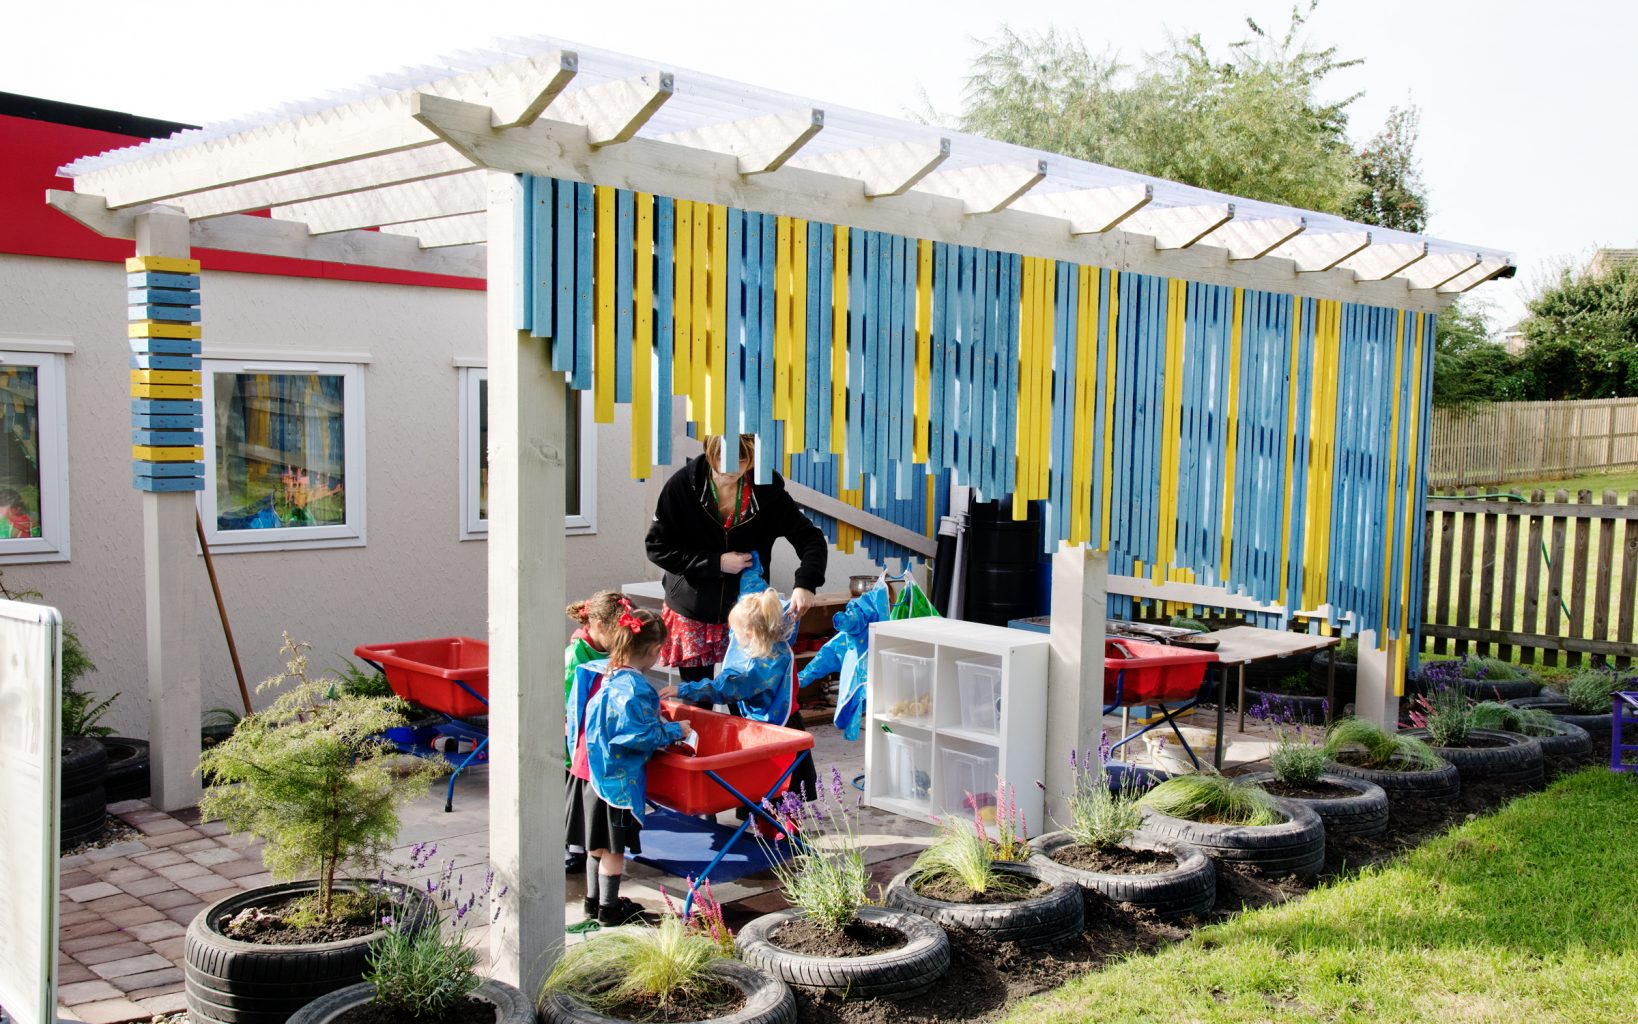 Working with Evoke Landscape Design Ltd to create an outdoor learning area